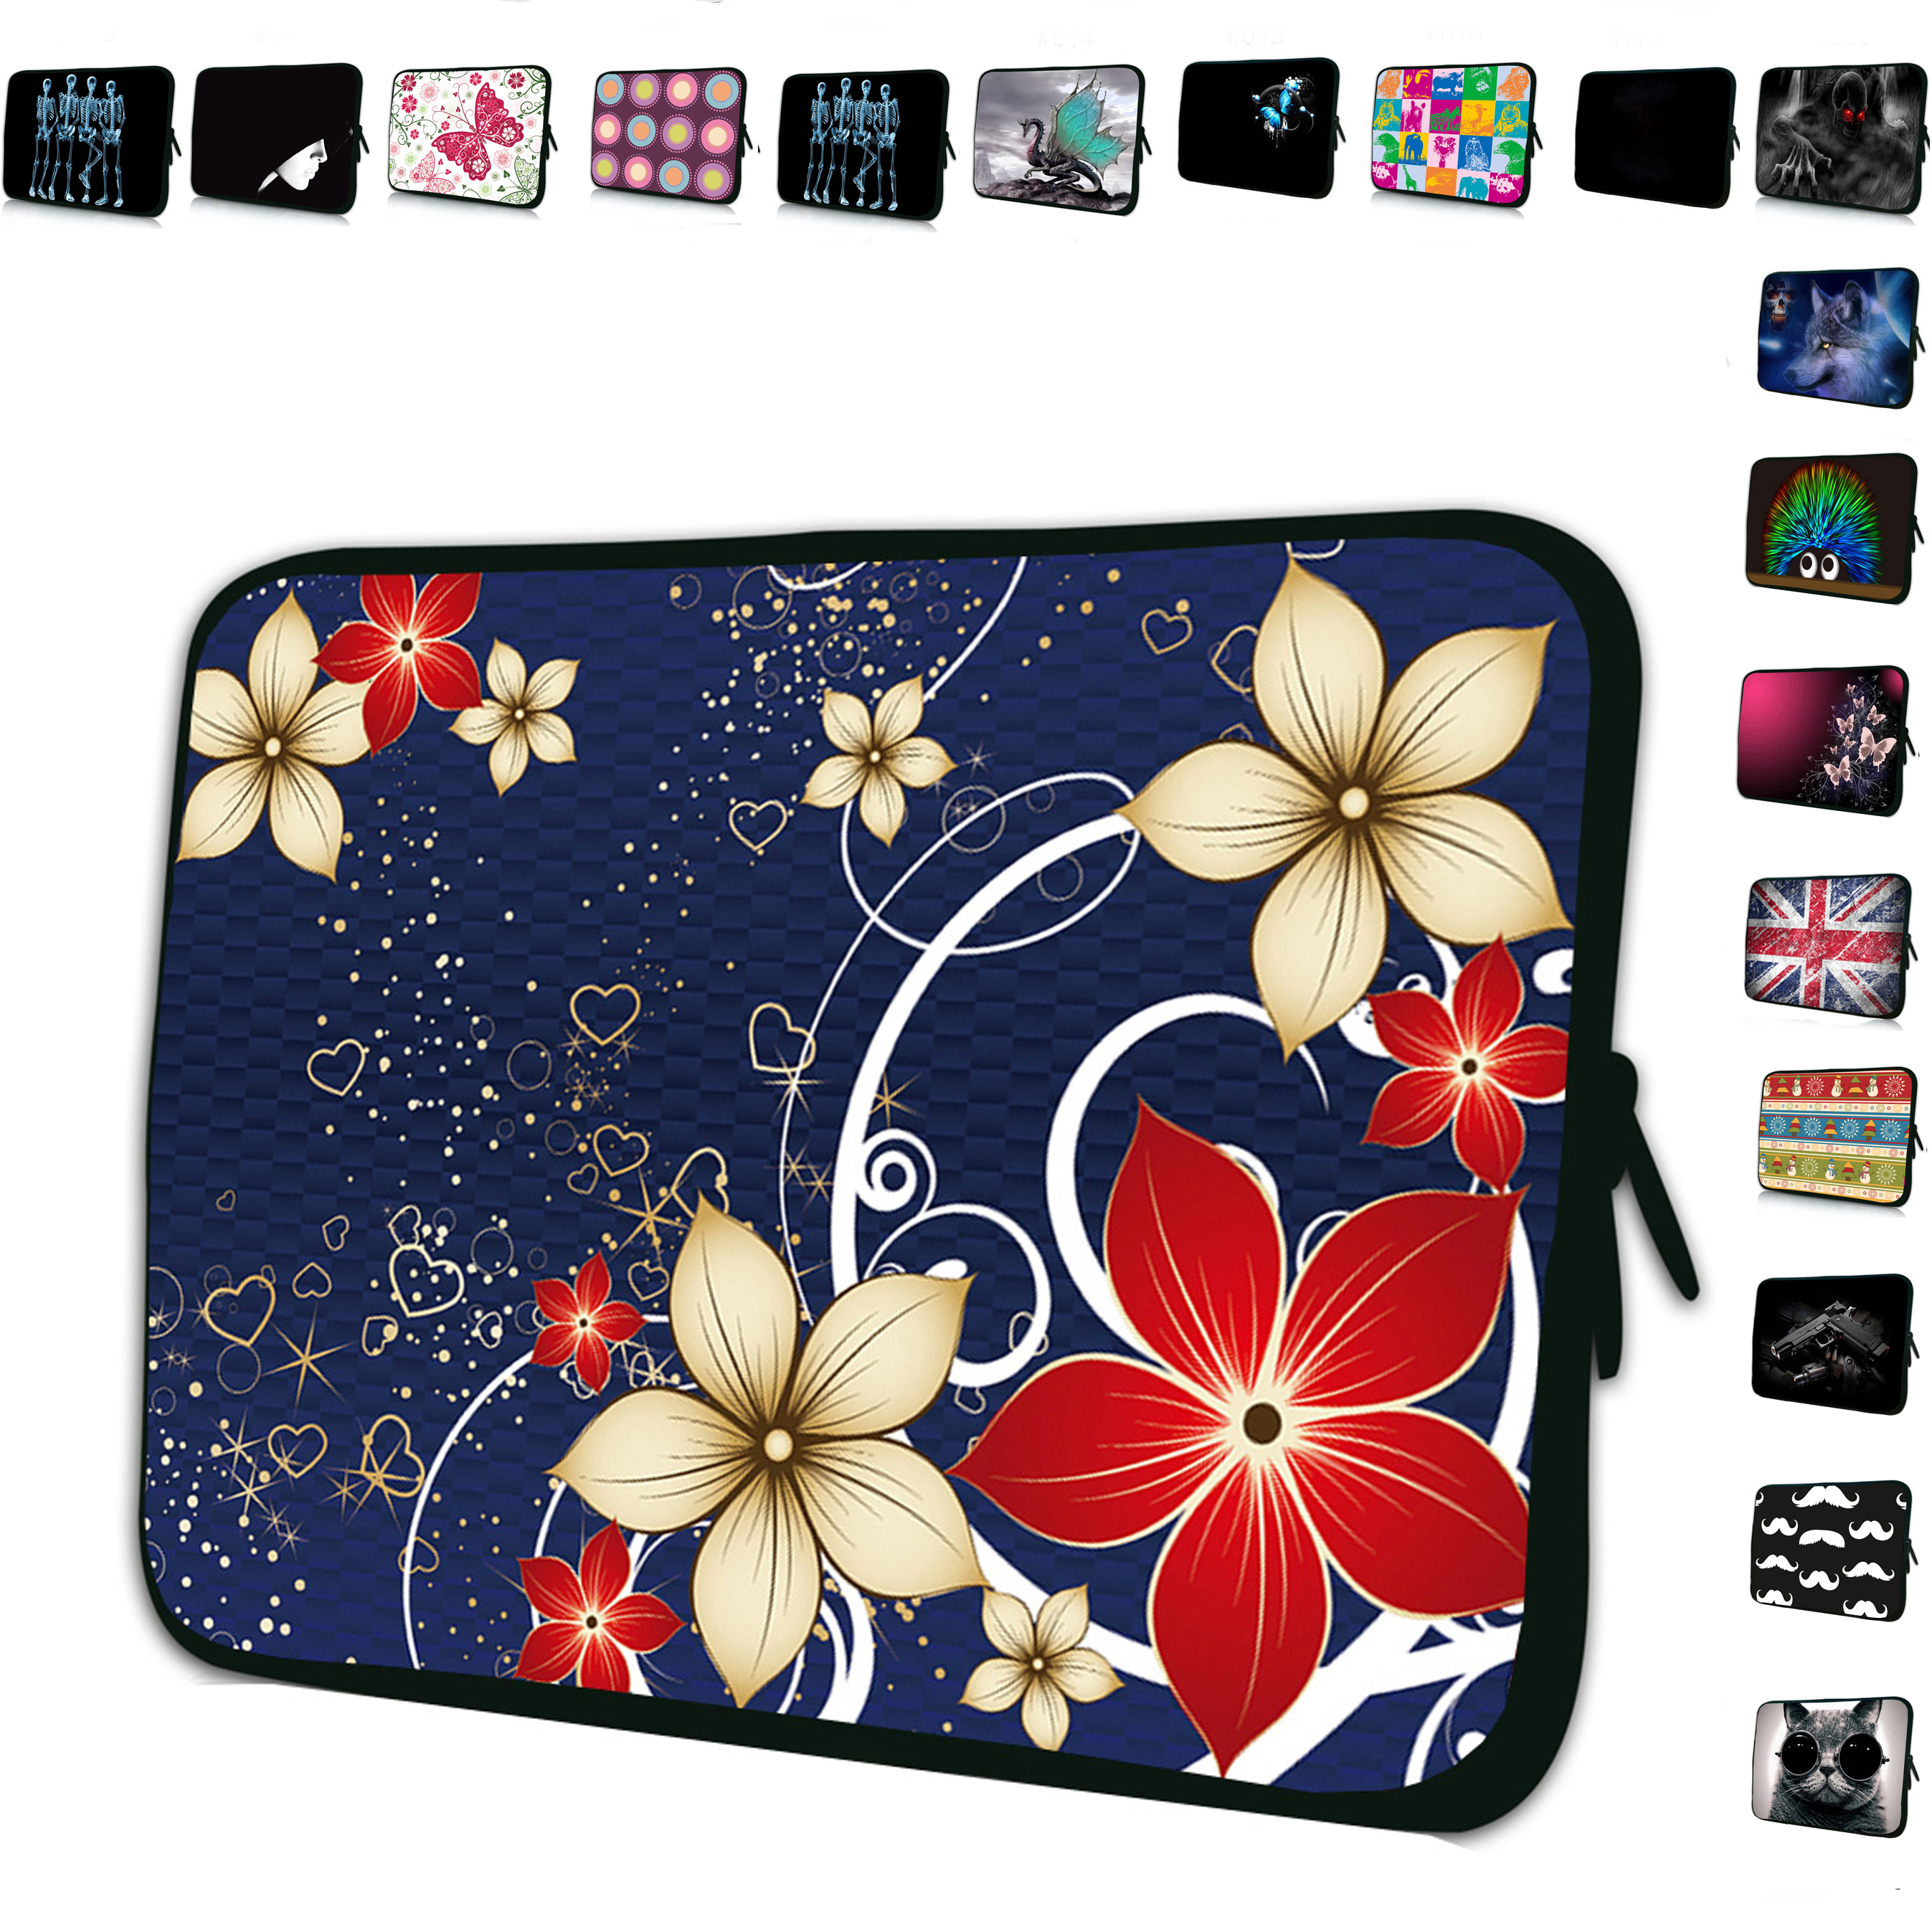 Portable Tablet 10 inch 10.1 Sleeve Bags Zipper Neoprene Cover Pouch samsung galaxy tab s2 9.7 Ipad Air 5 4 4th 3 3rd 2 9.7""